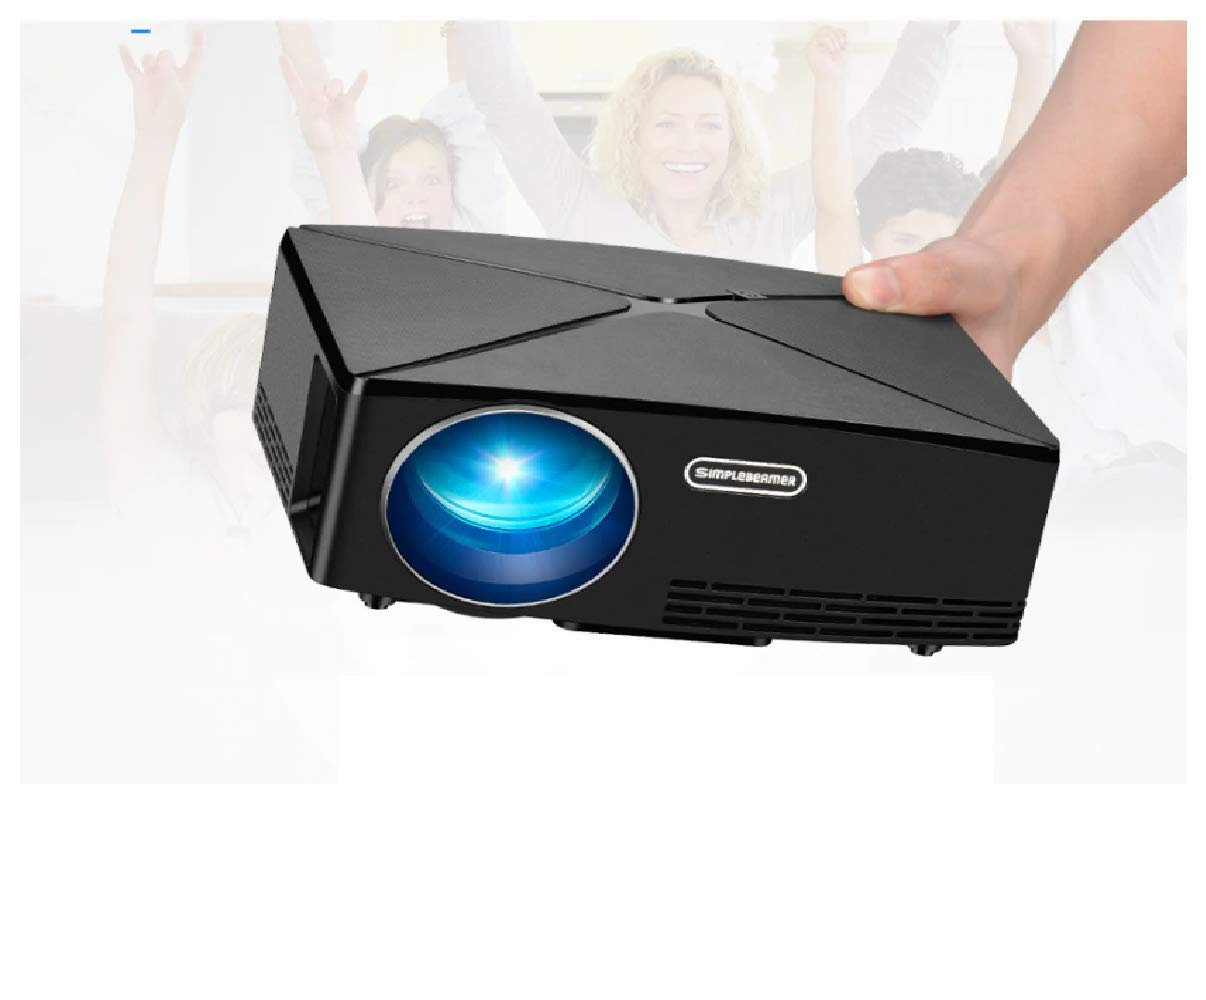 Amazon.com: AUN Mini Projector C80 UP, 1280x720 Resolution ...